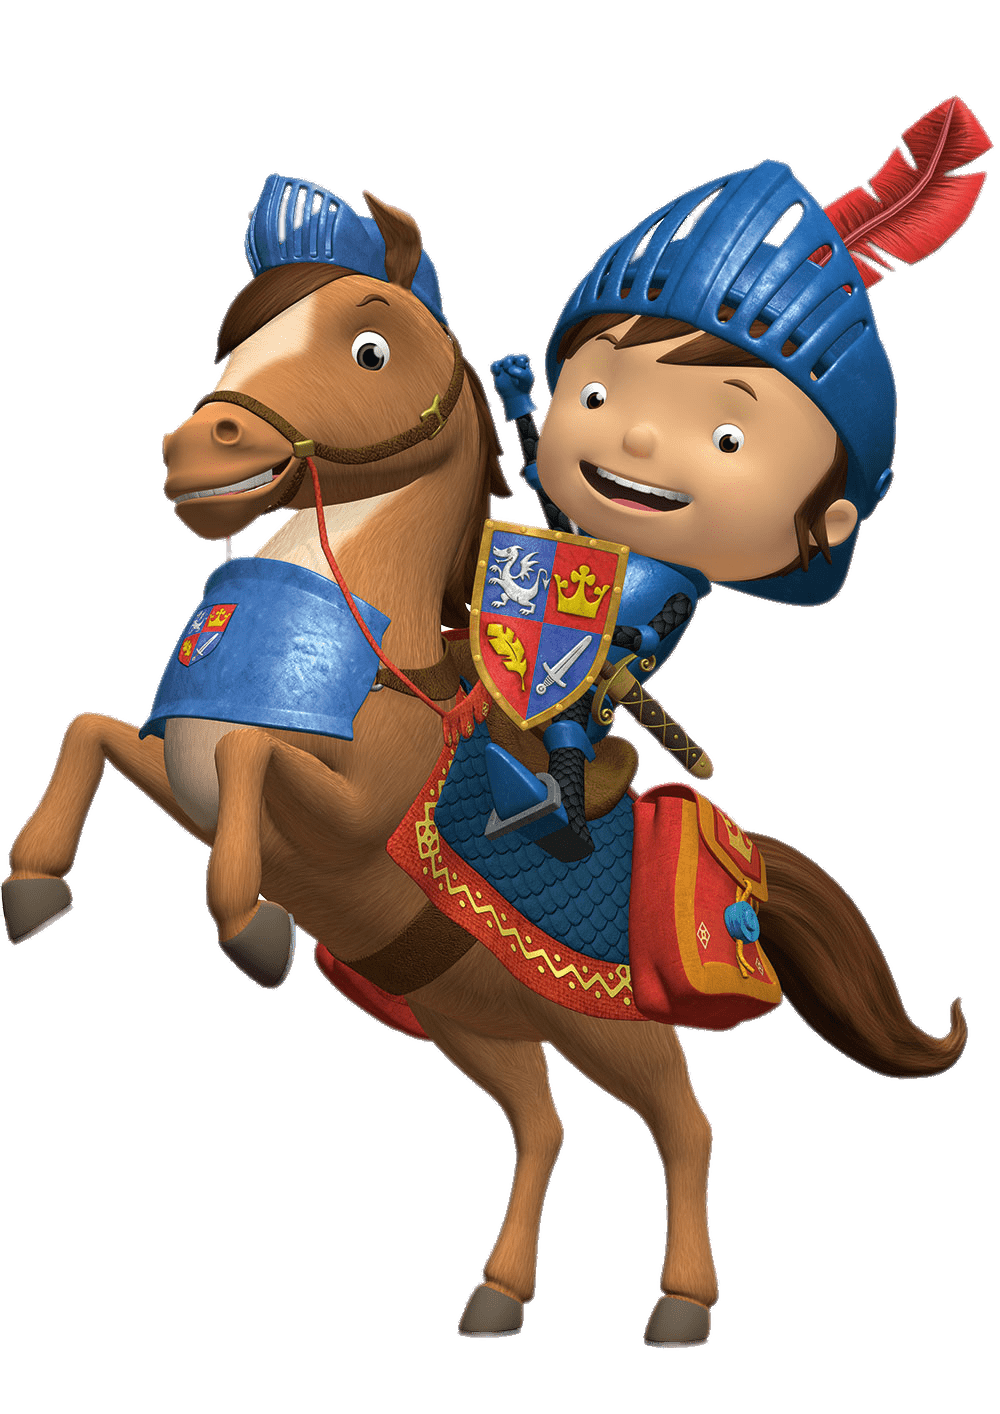 Knight clipart mike the knight. Transparent png stickpng